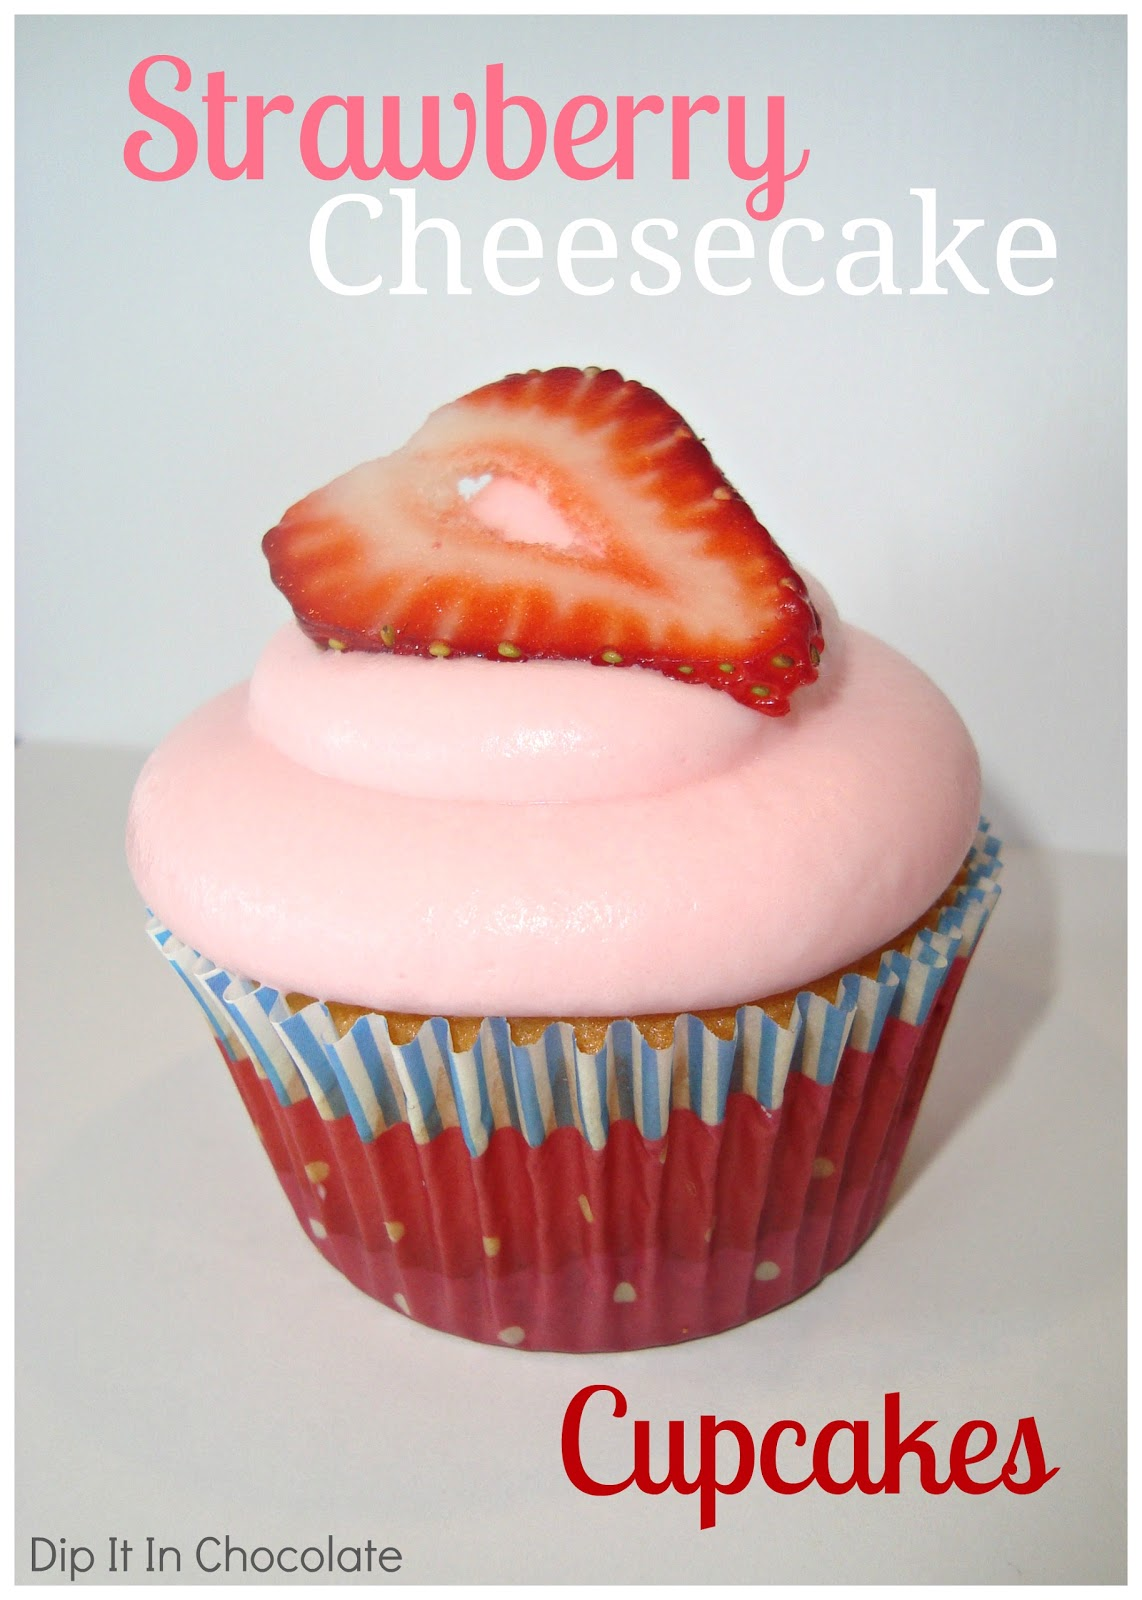 Strawberry Cheesecake Cupcakes ~ Dip it in Chocolate